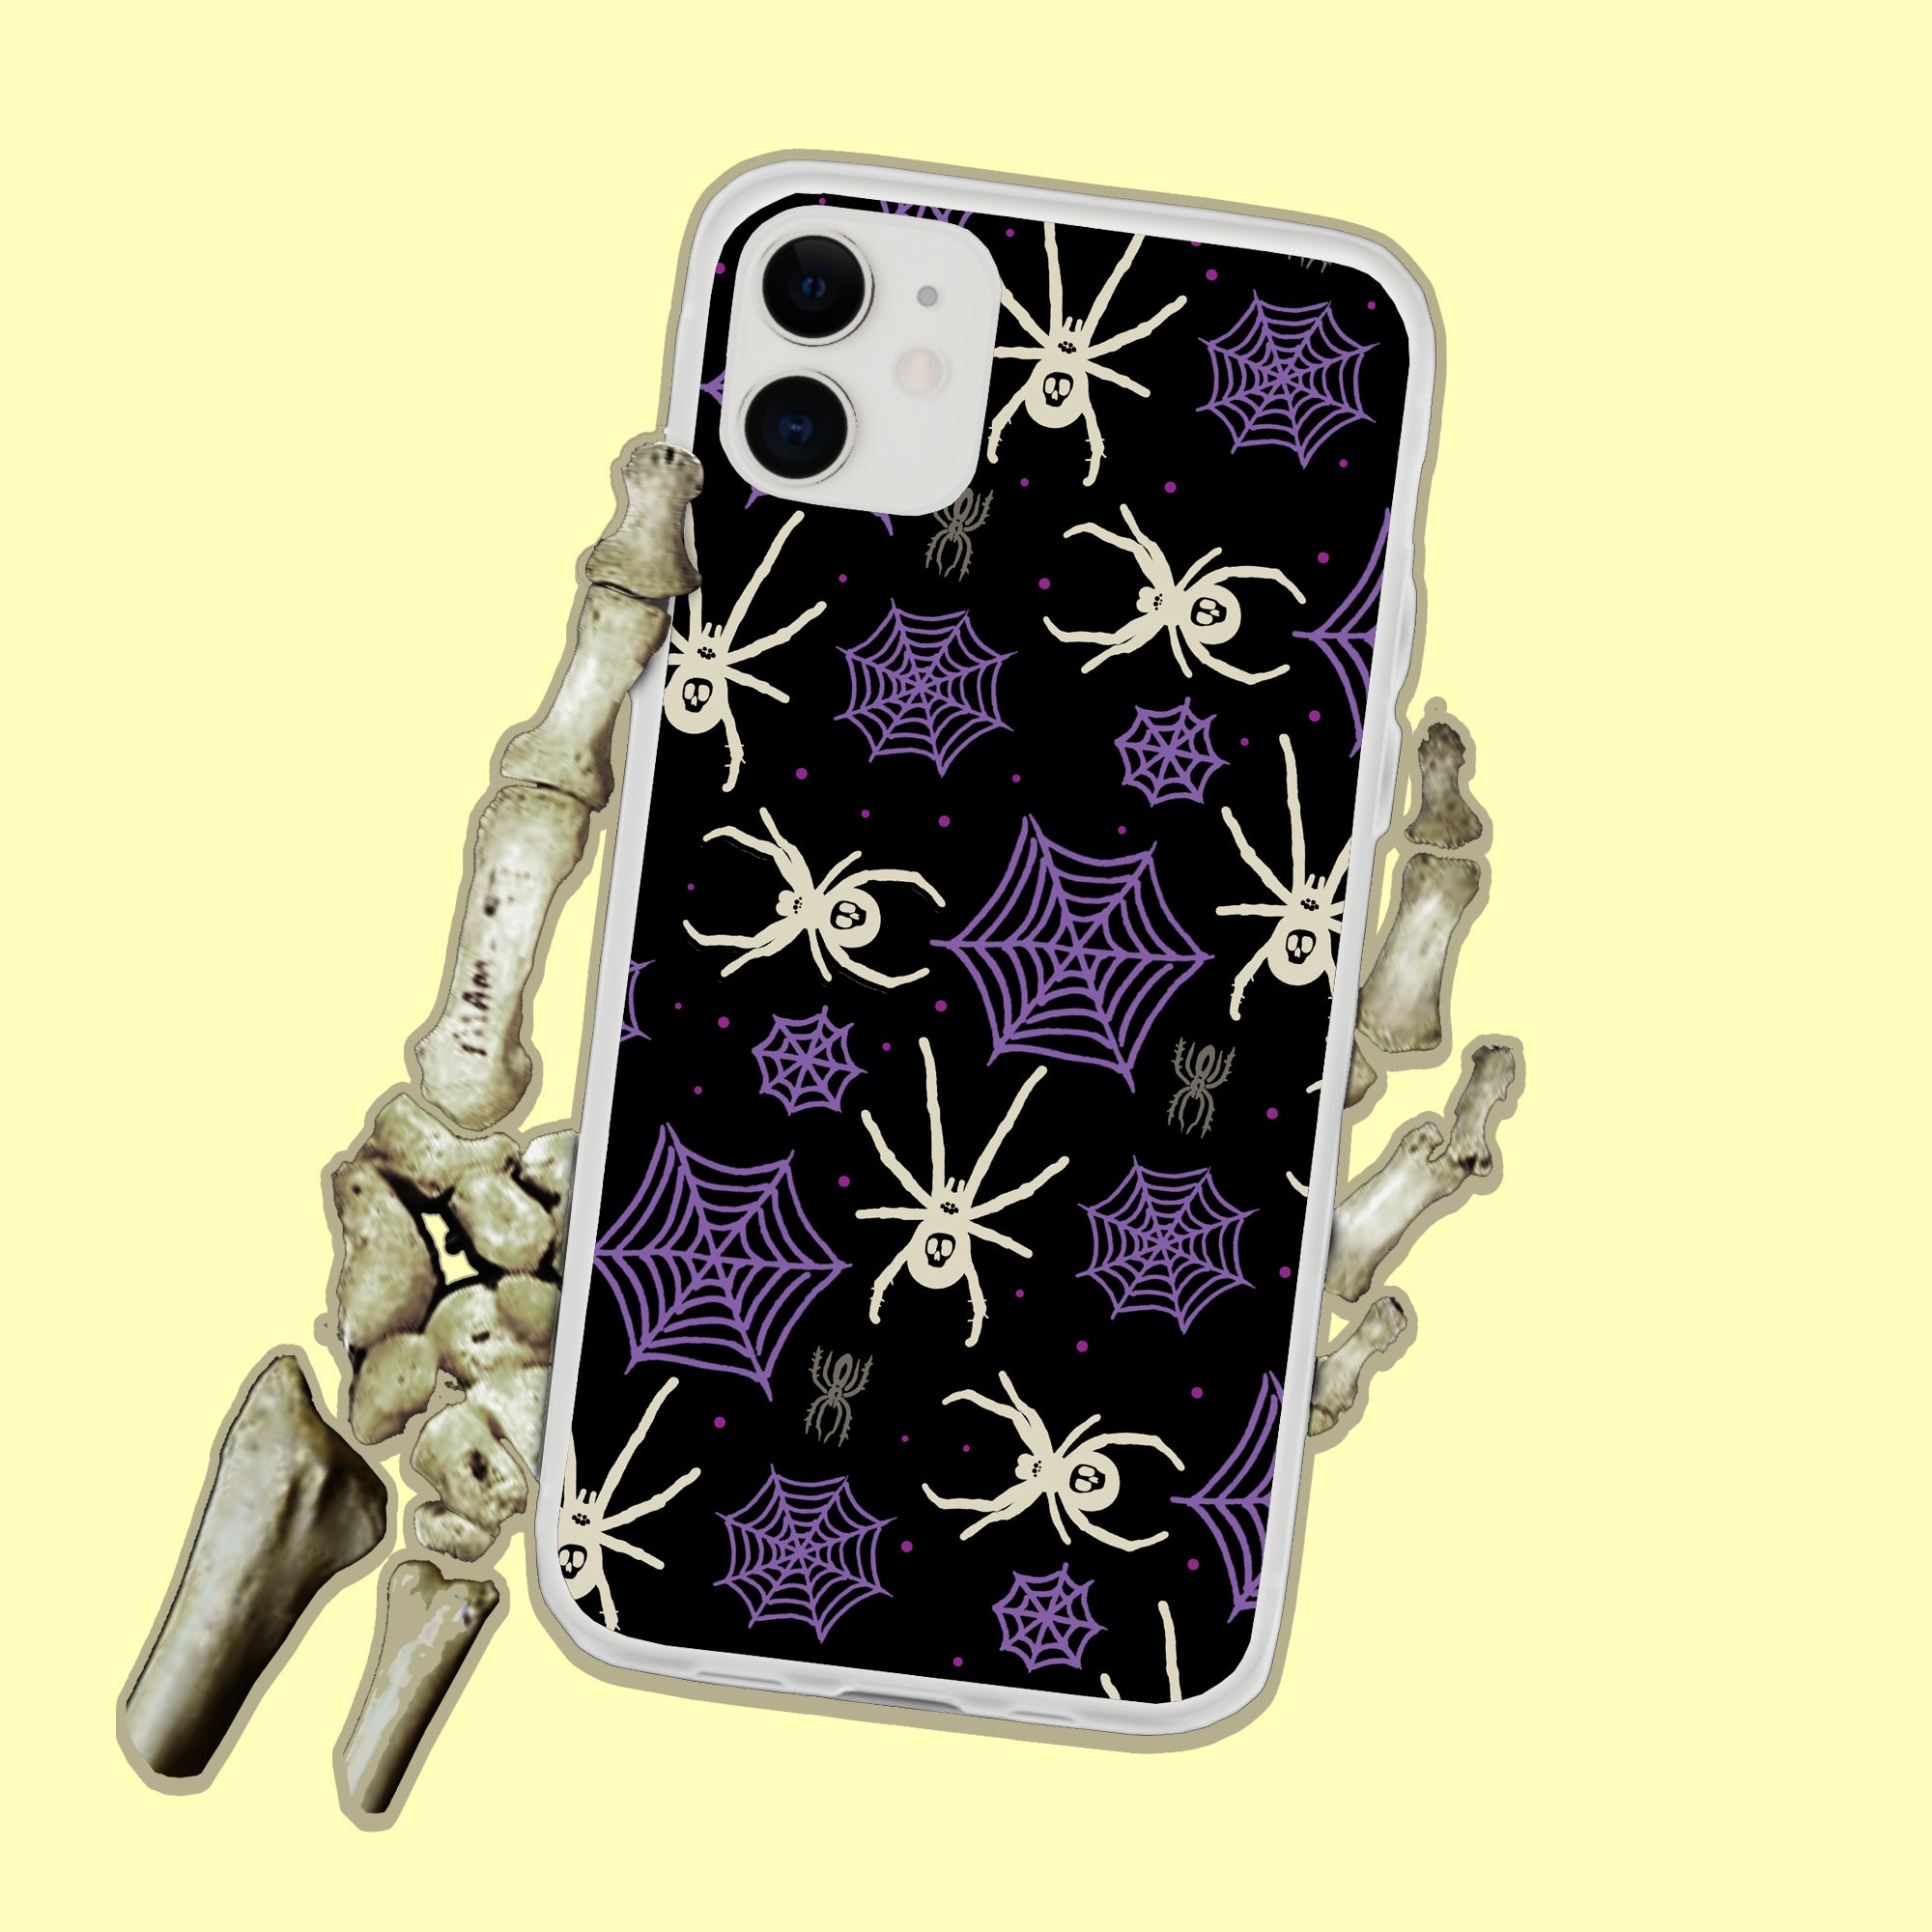 Spider Webs iPhone Case